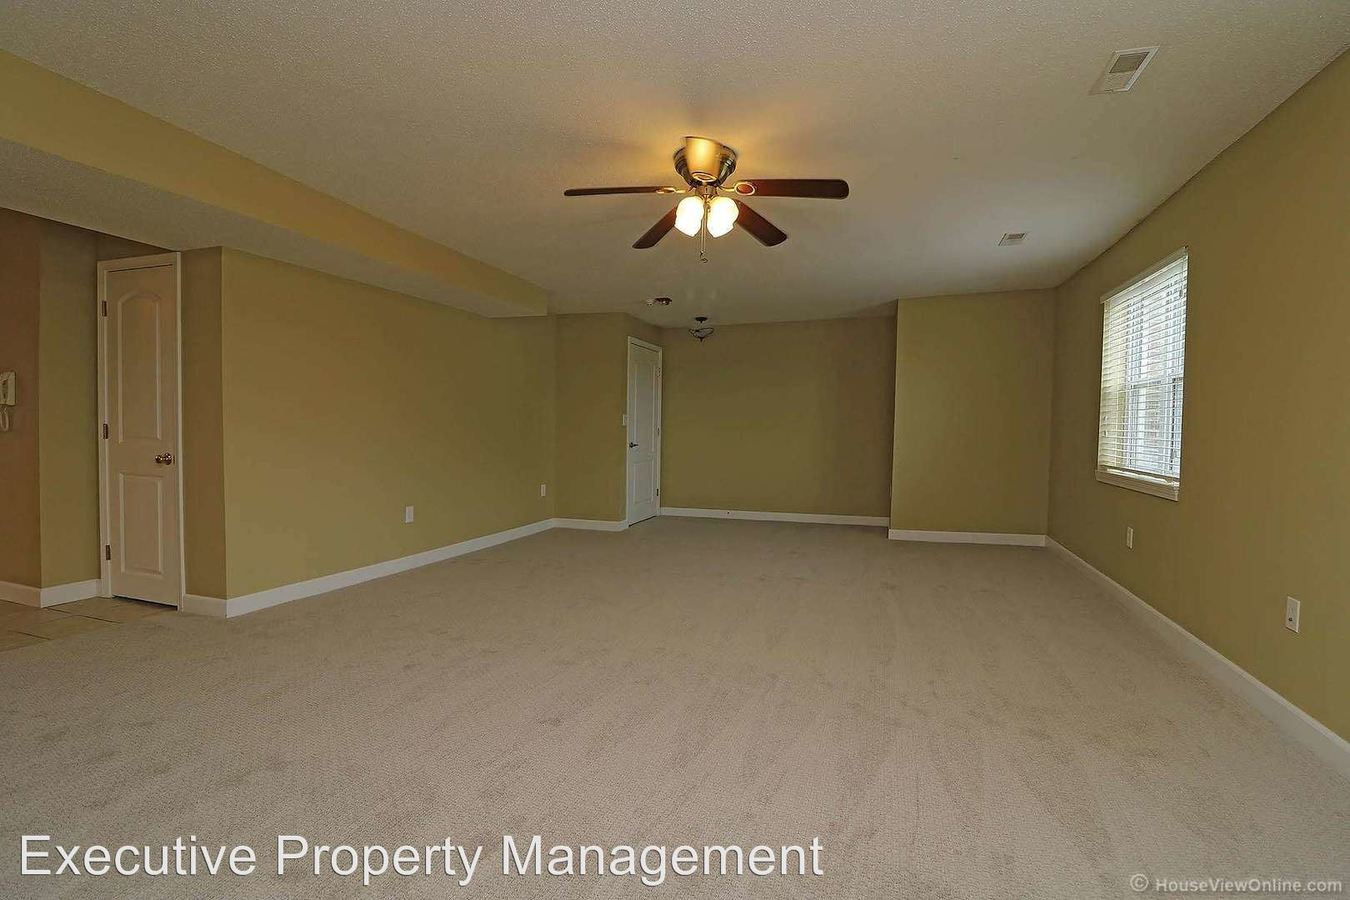 2 Bedrooms 2 Bathrooms Apartment for rent at 301 N Lorimier in Cape Girardeau, MO